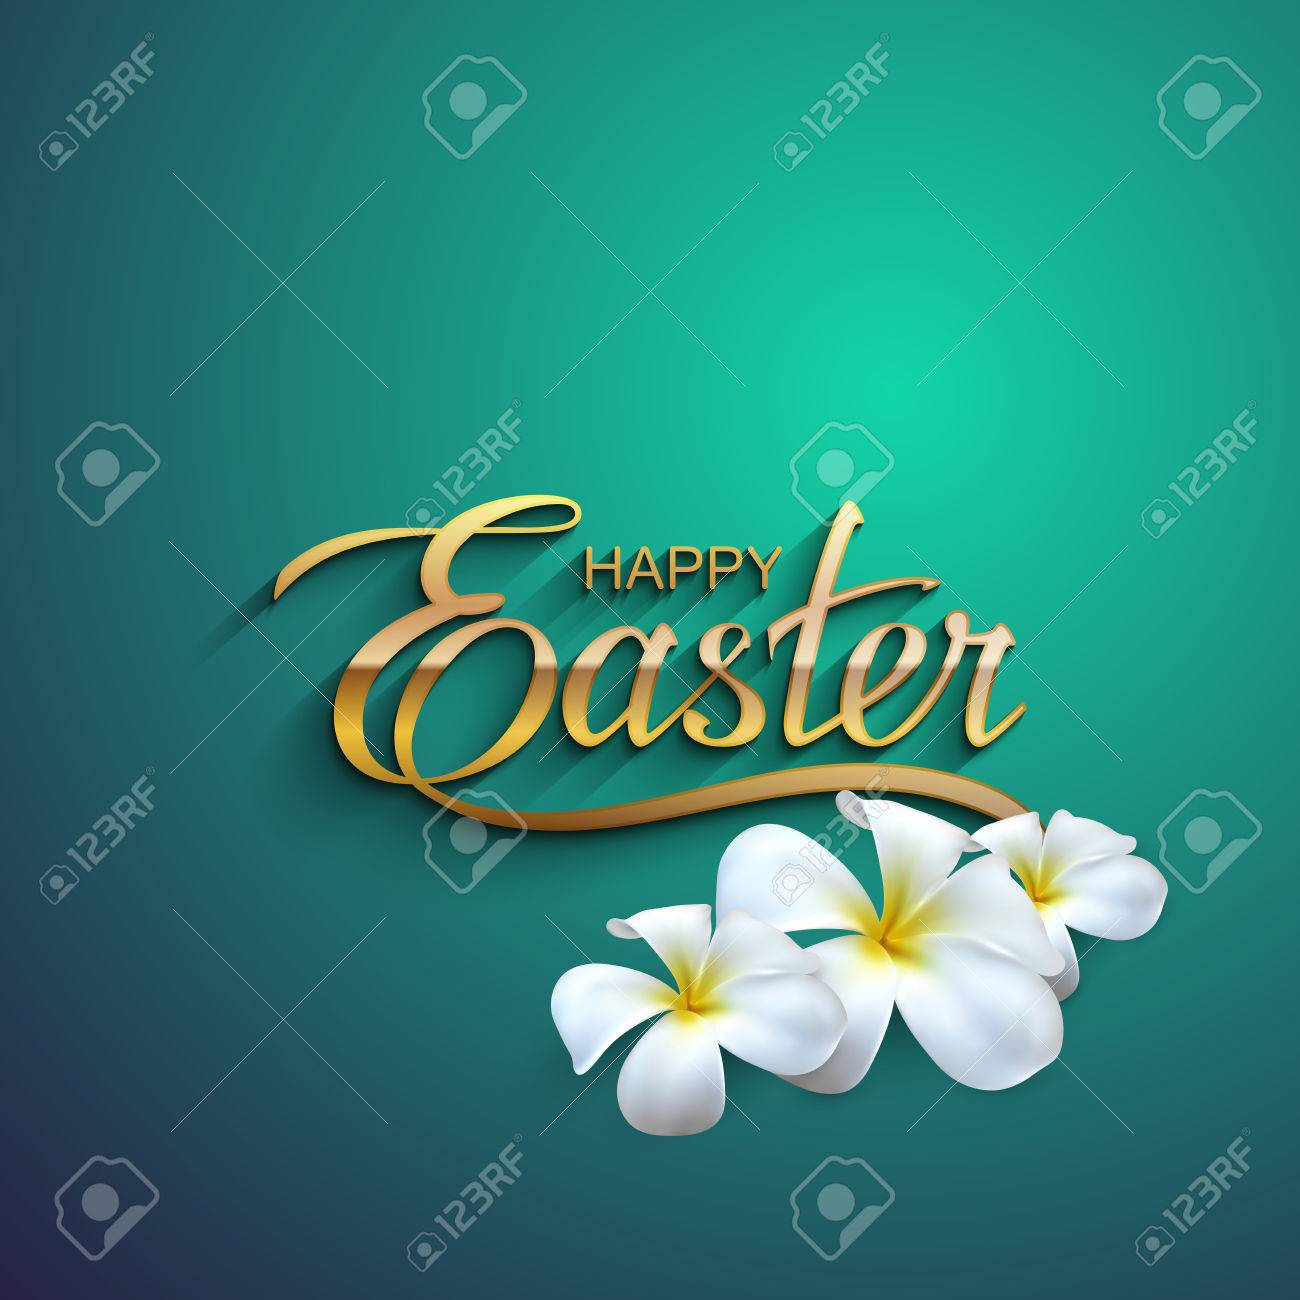 happy easter religious images u0026 stock pictures royalty free happy